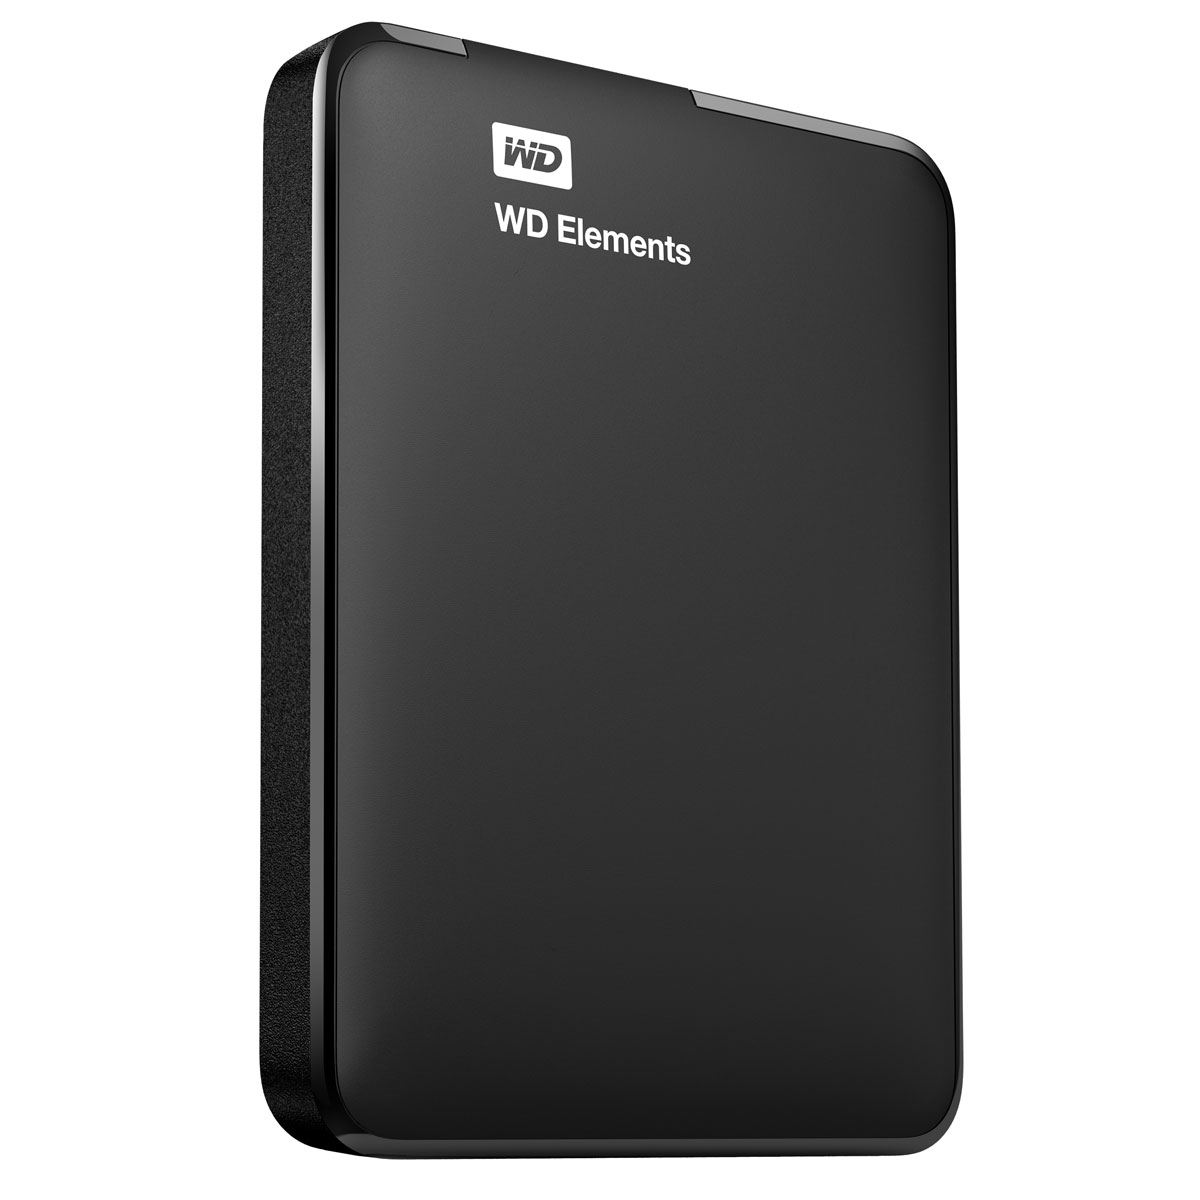 wd elements portable 1 to noir usb 3 0 disque dur externe western digital sur. Black Bedroom Furniture Sets. Home Design Ideas